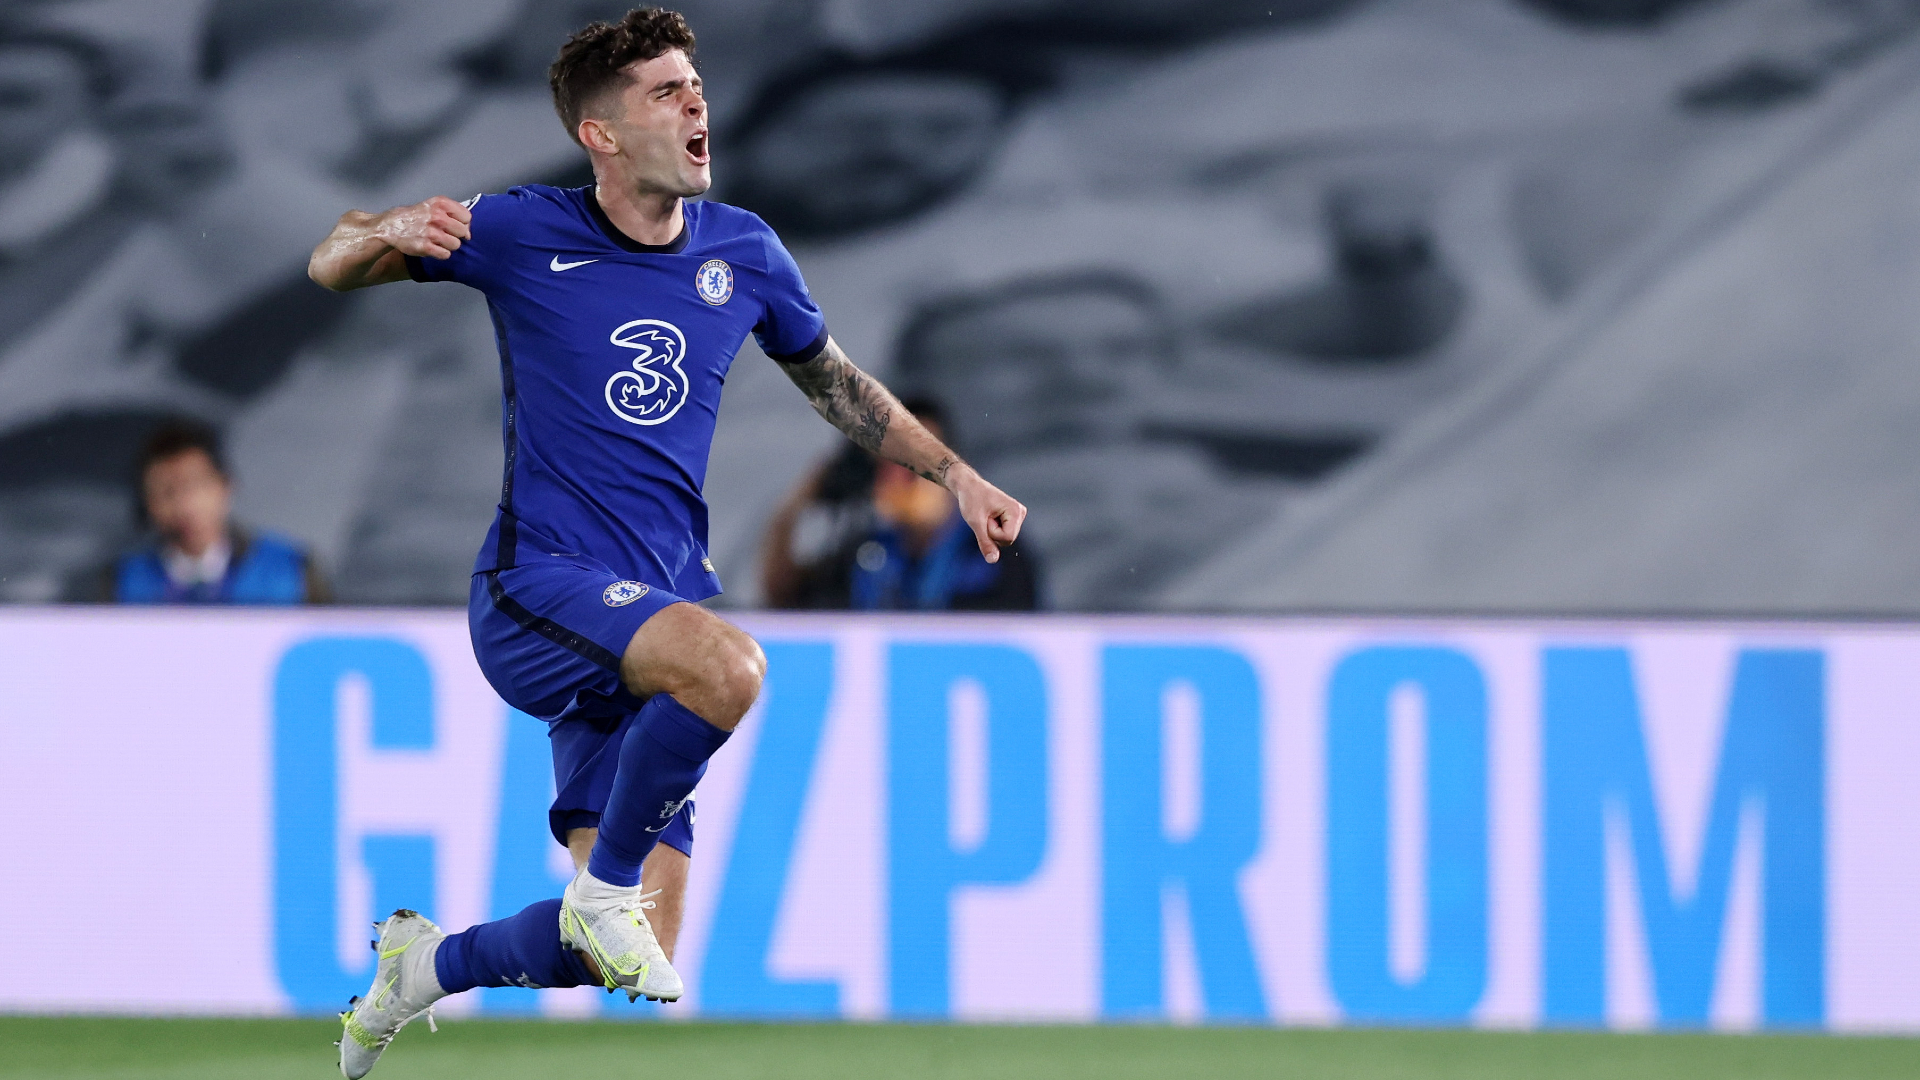 USMNT star Pulisic sets 'big target' at Chelsea and welcomes competition for places